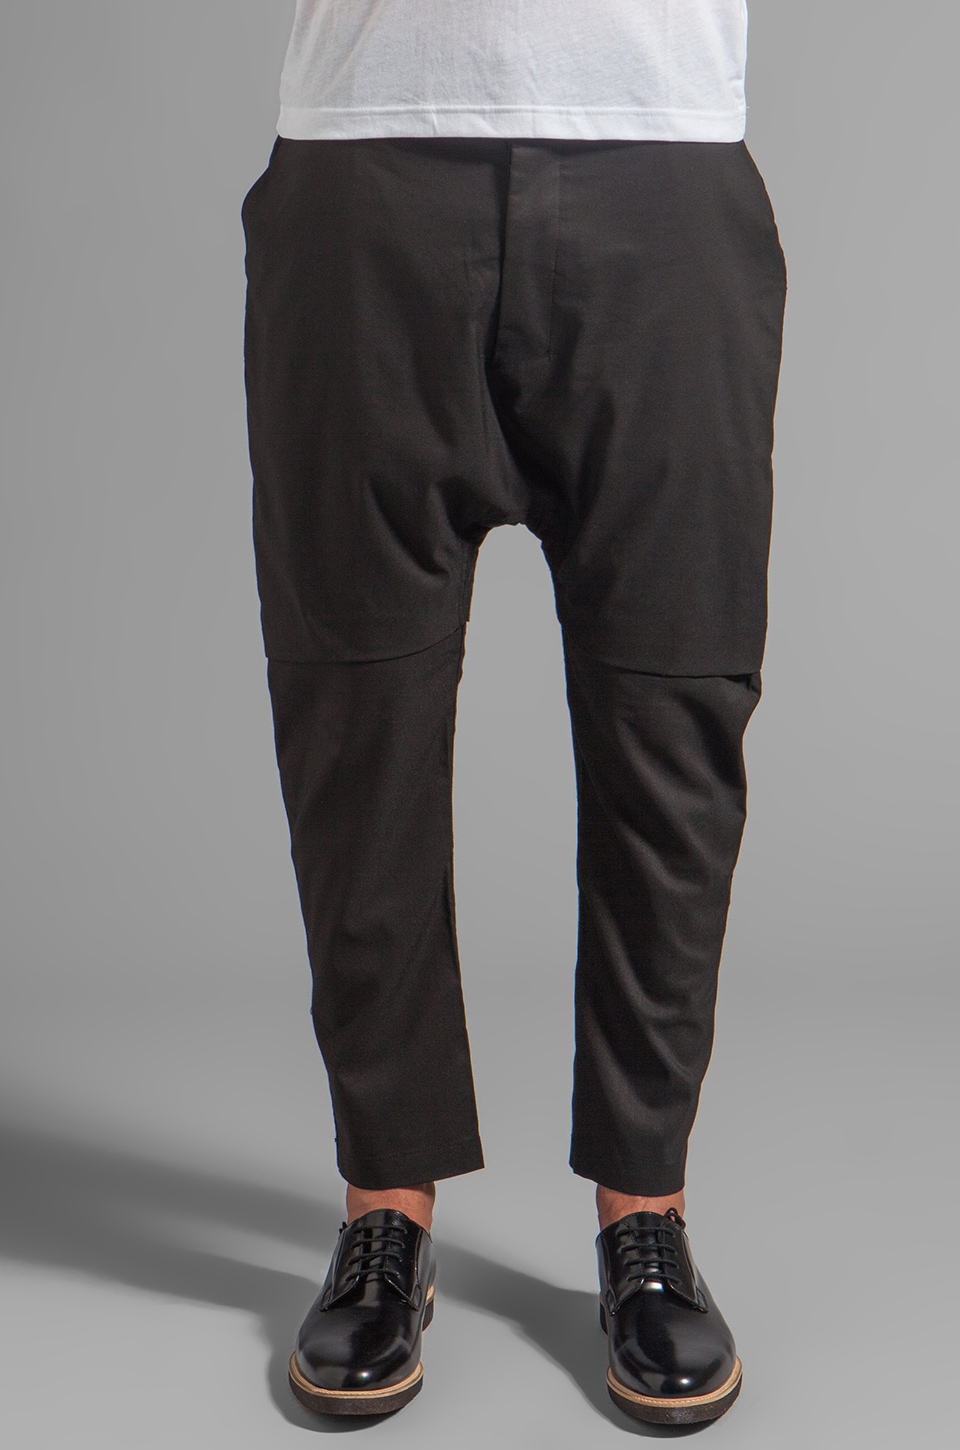 CHAPTER Xaiver Layered Drop Seat Pant in Charcoal